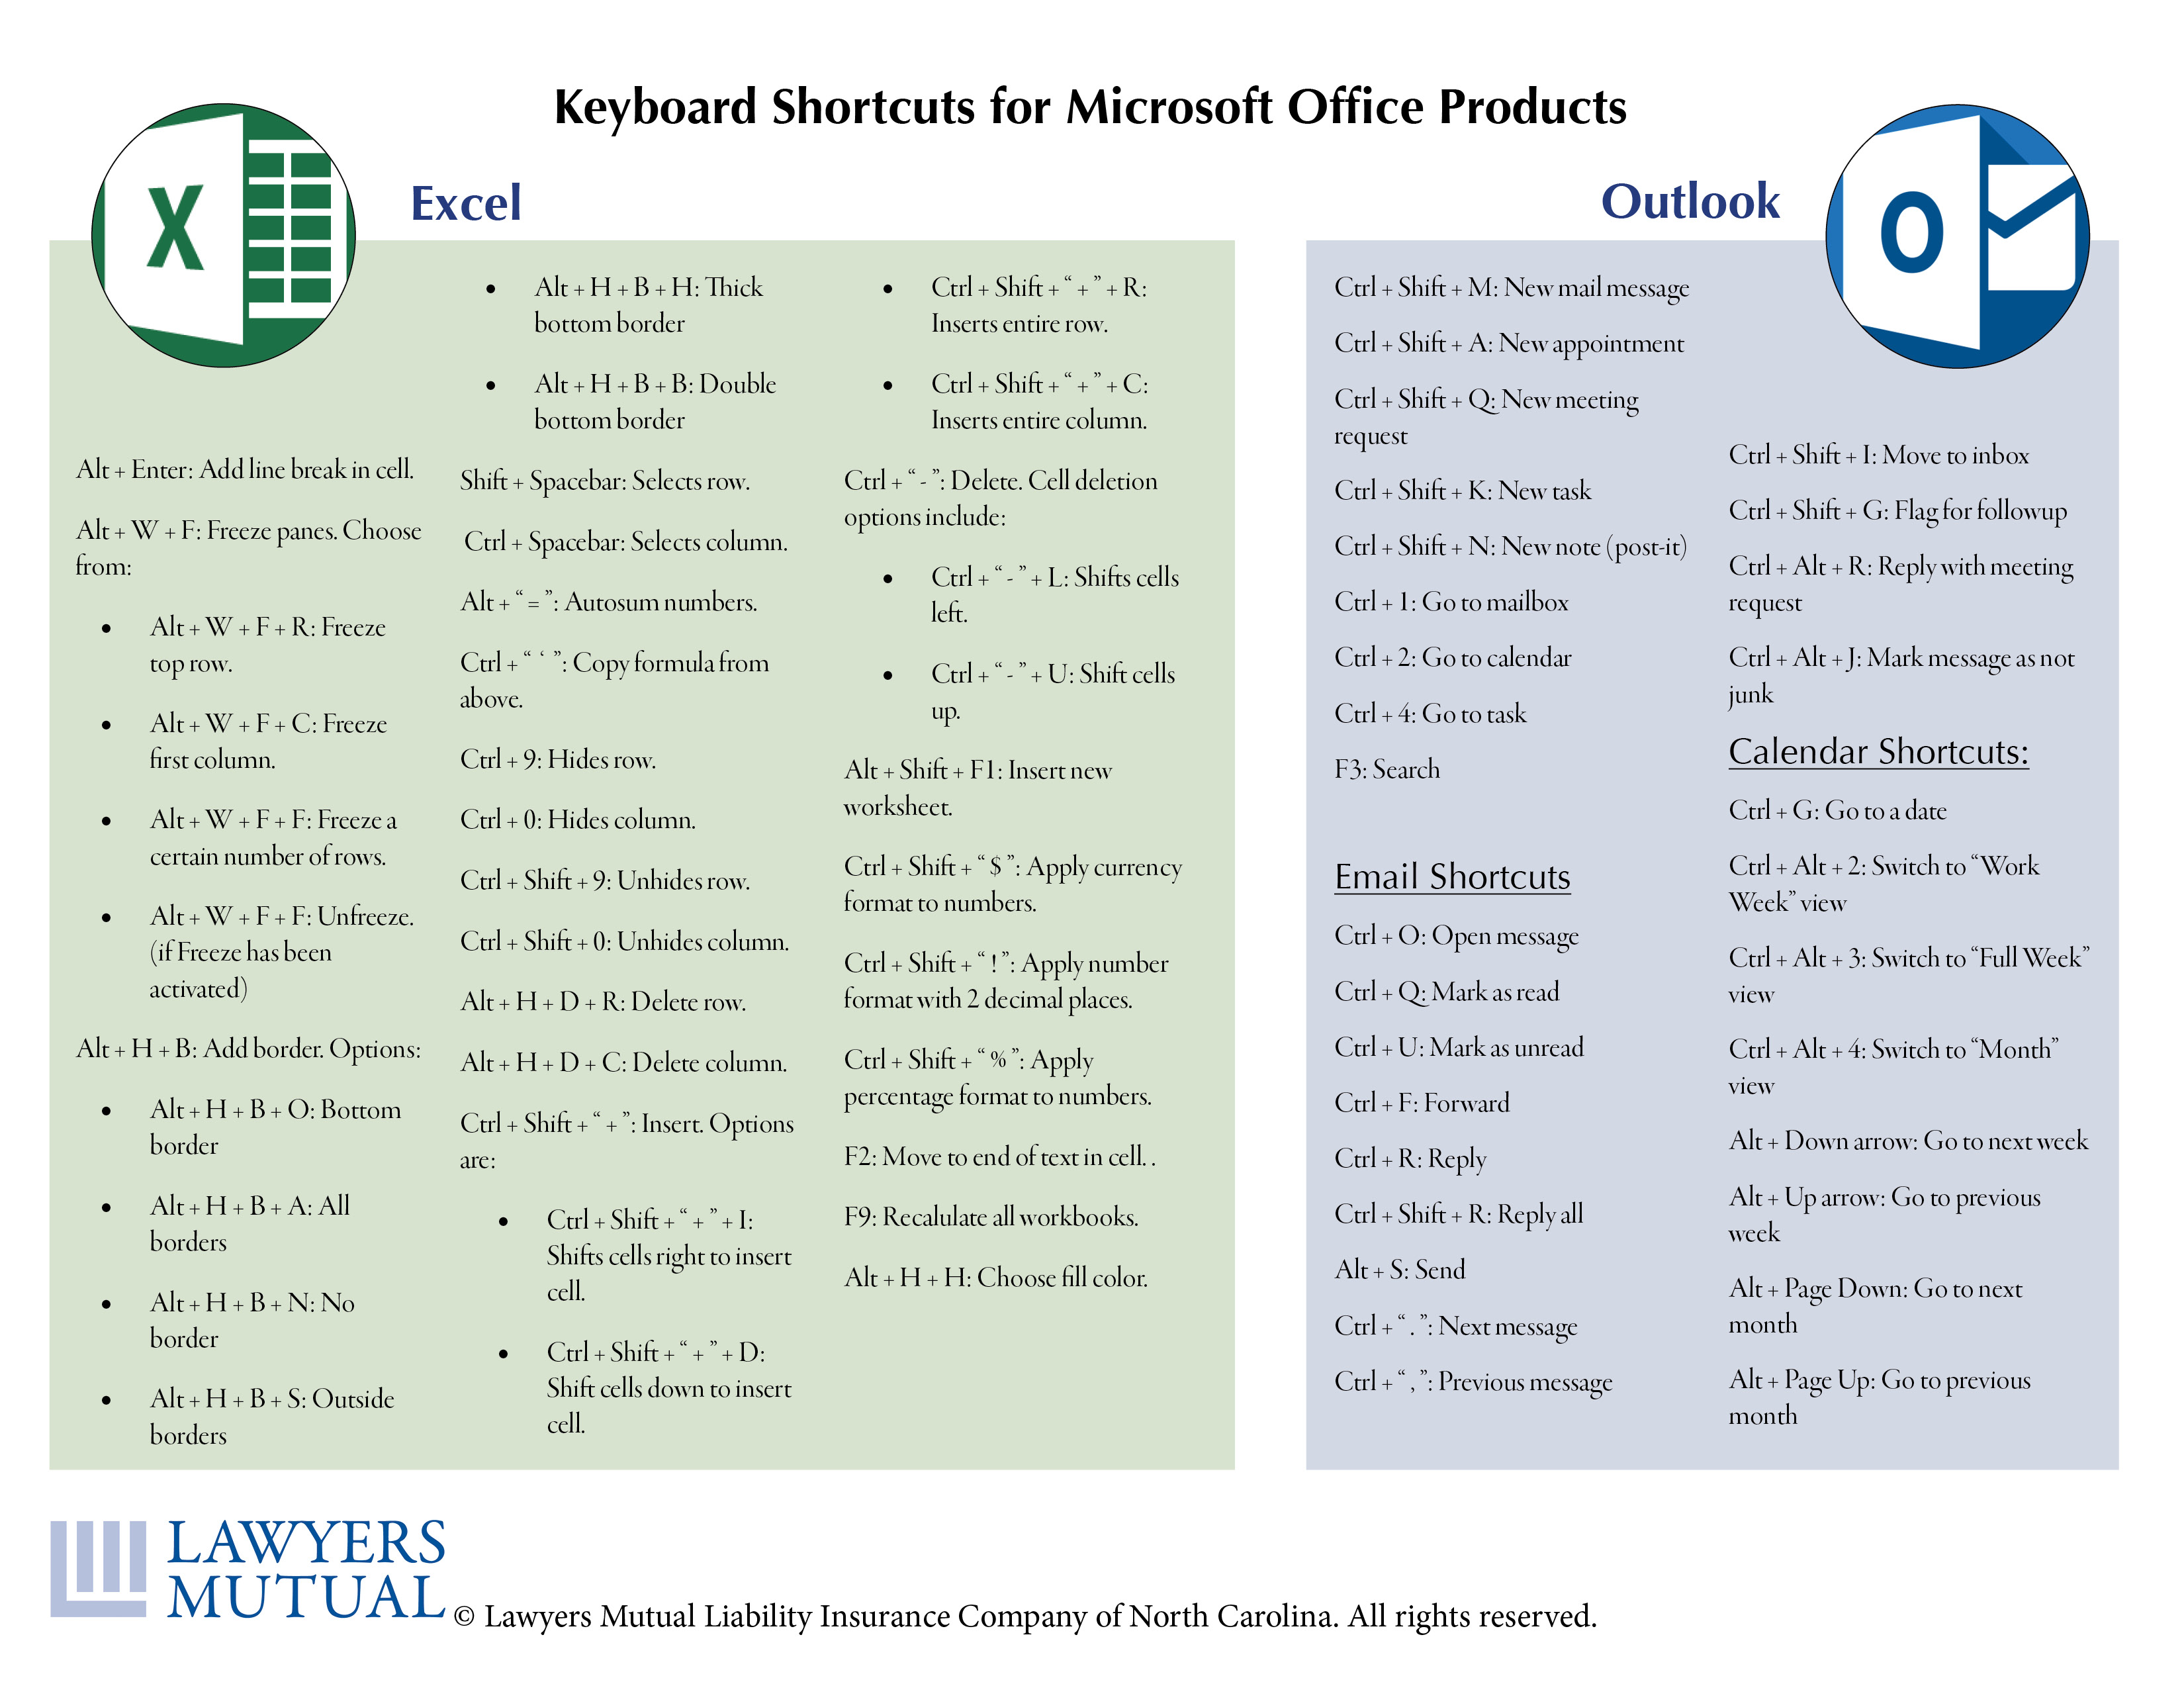 Shortcuts for Excel and Outlook